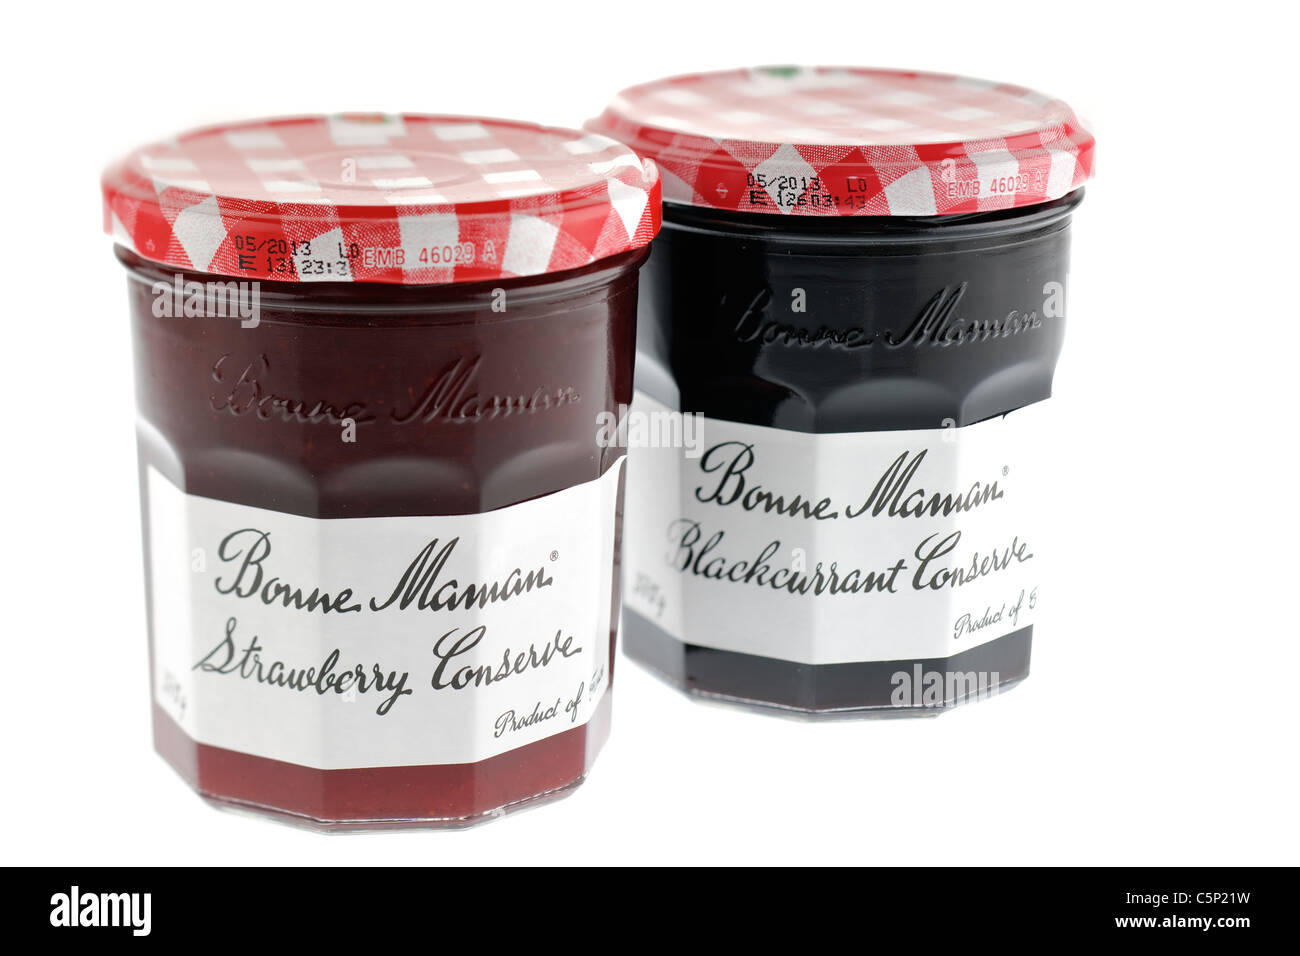 Two Jars of Bonne Maman conserve one of Strawberry and one of Blackcurrant. - Stock Image